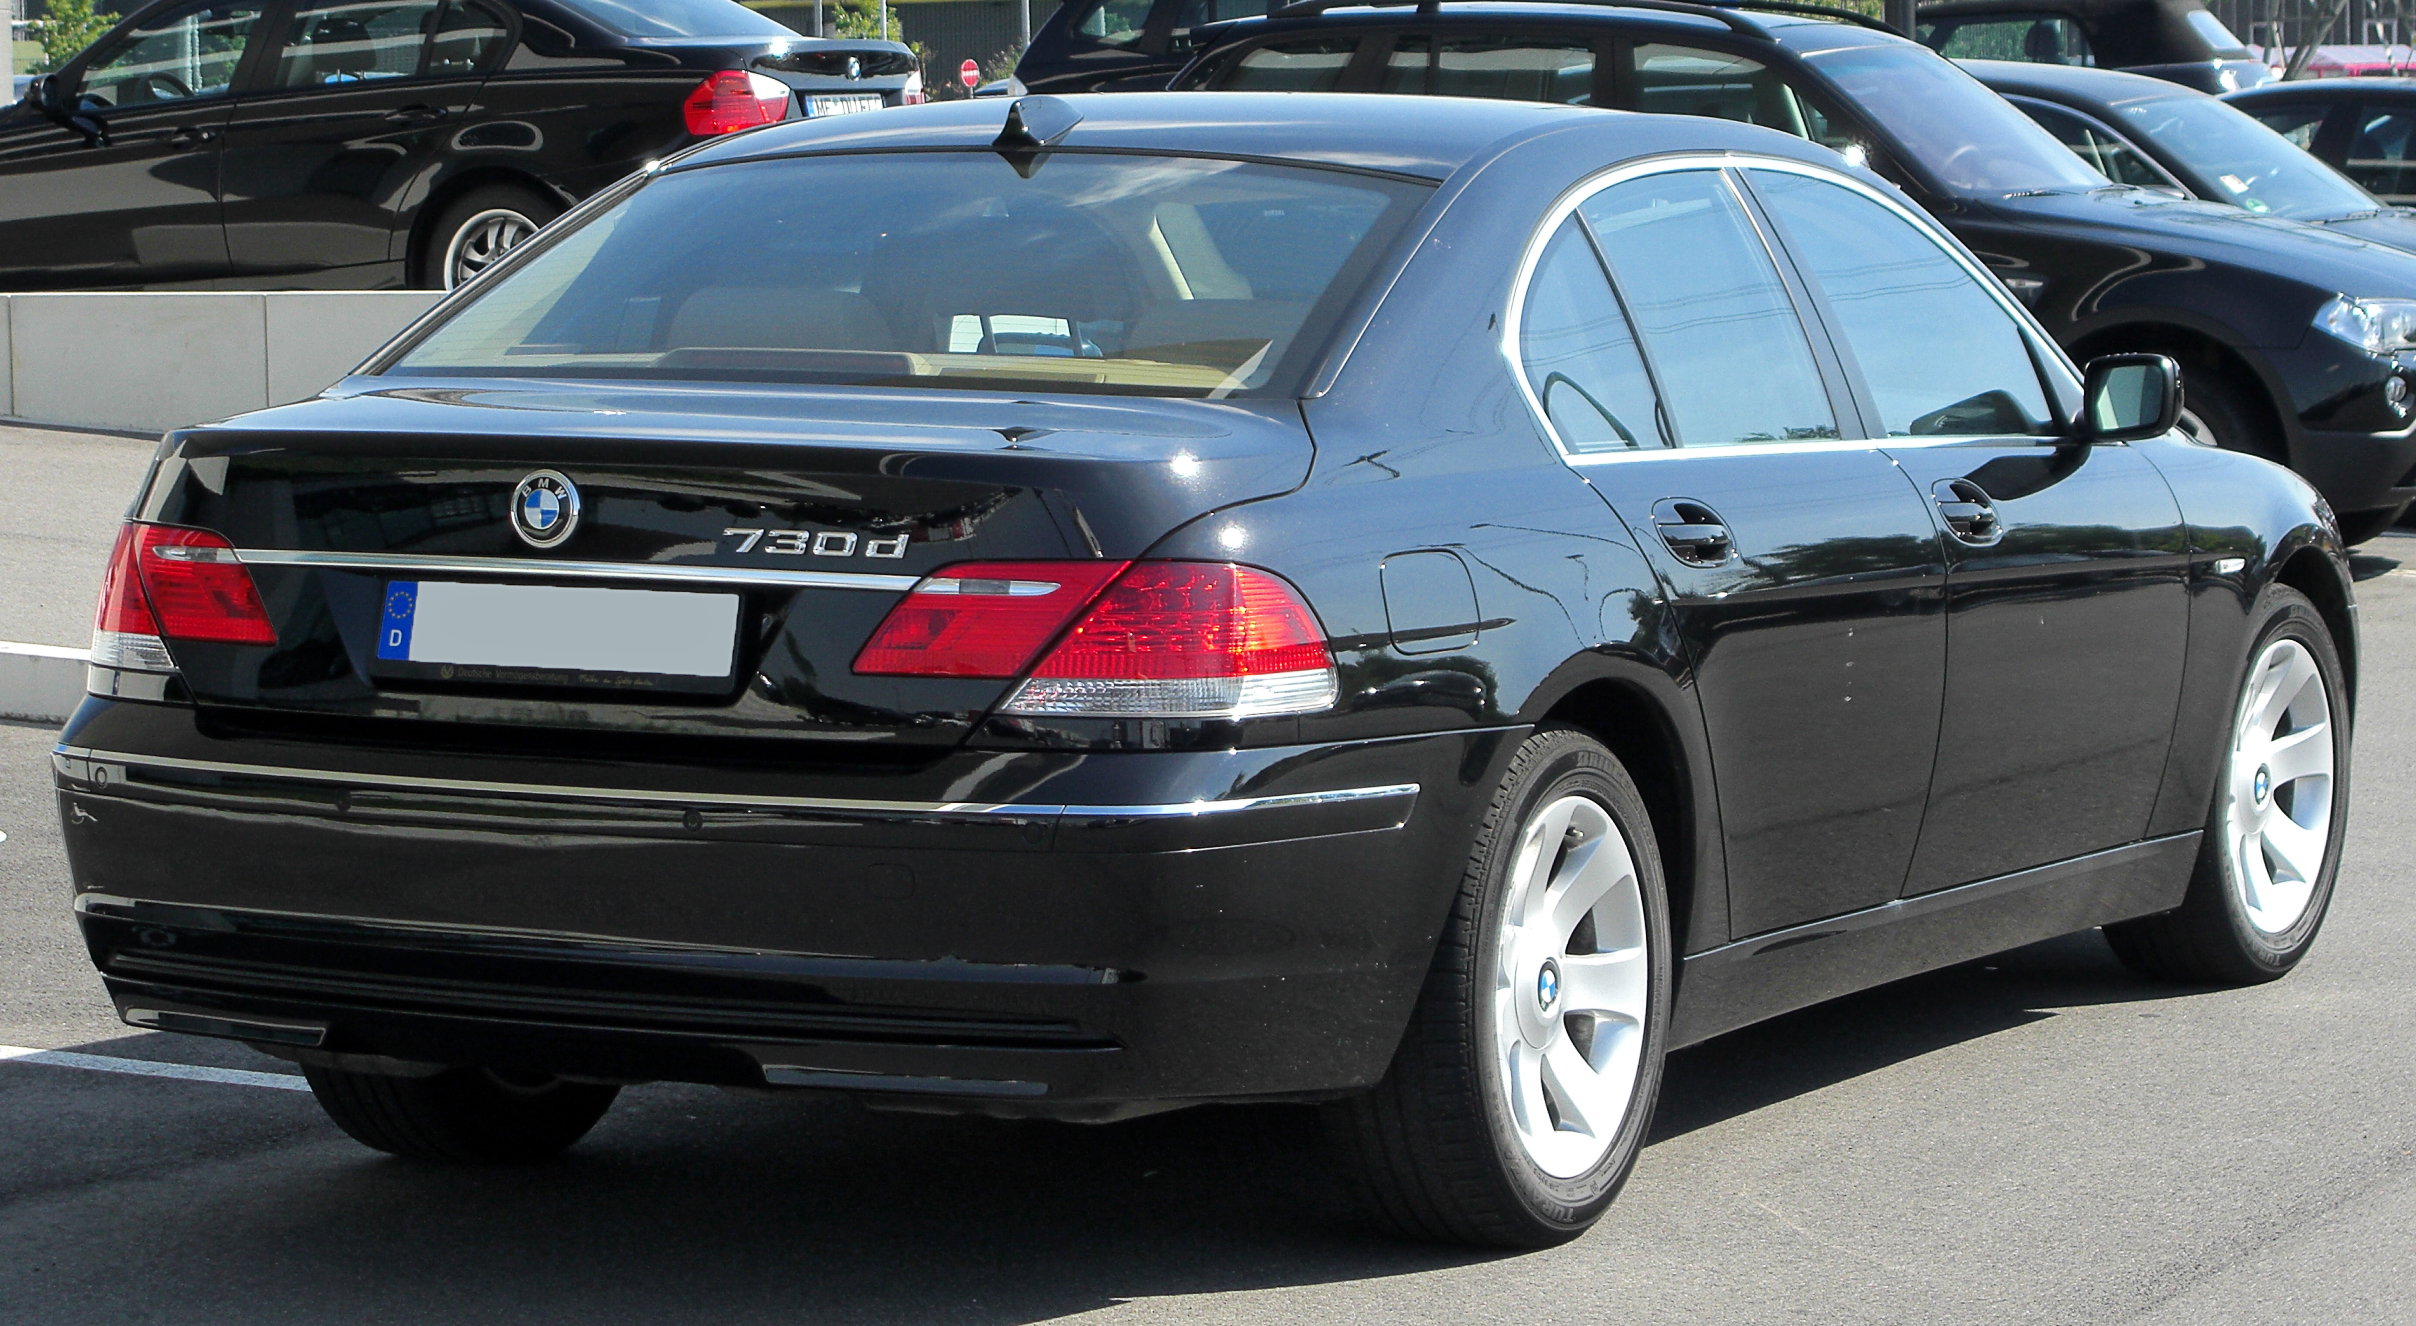 2006 Bmw 750i >> File:BMW 730d (E65) Facelift rear 20100718.jpg - Wikimedia Commons